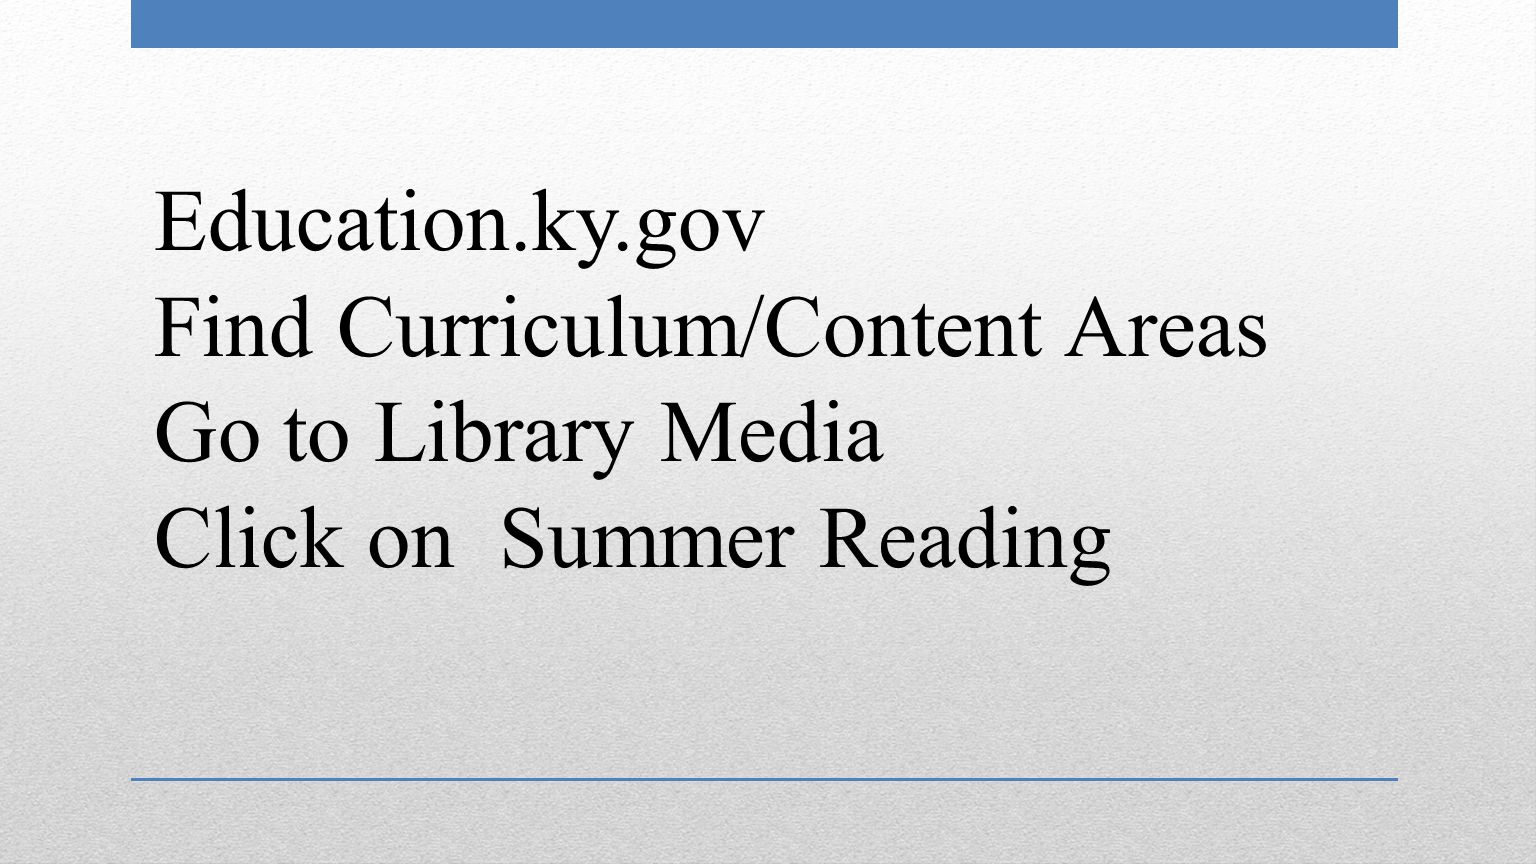 Education.ky.gov Find Curriculum/Content Areas Go to Library Media Click on Summer Reading